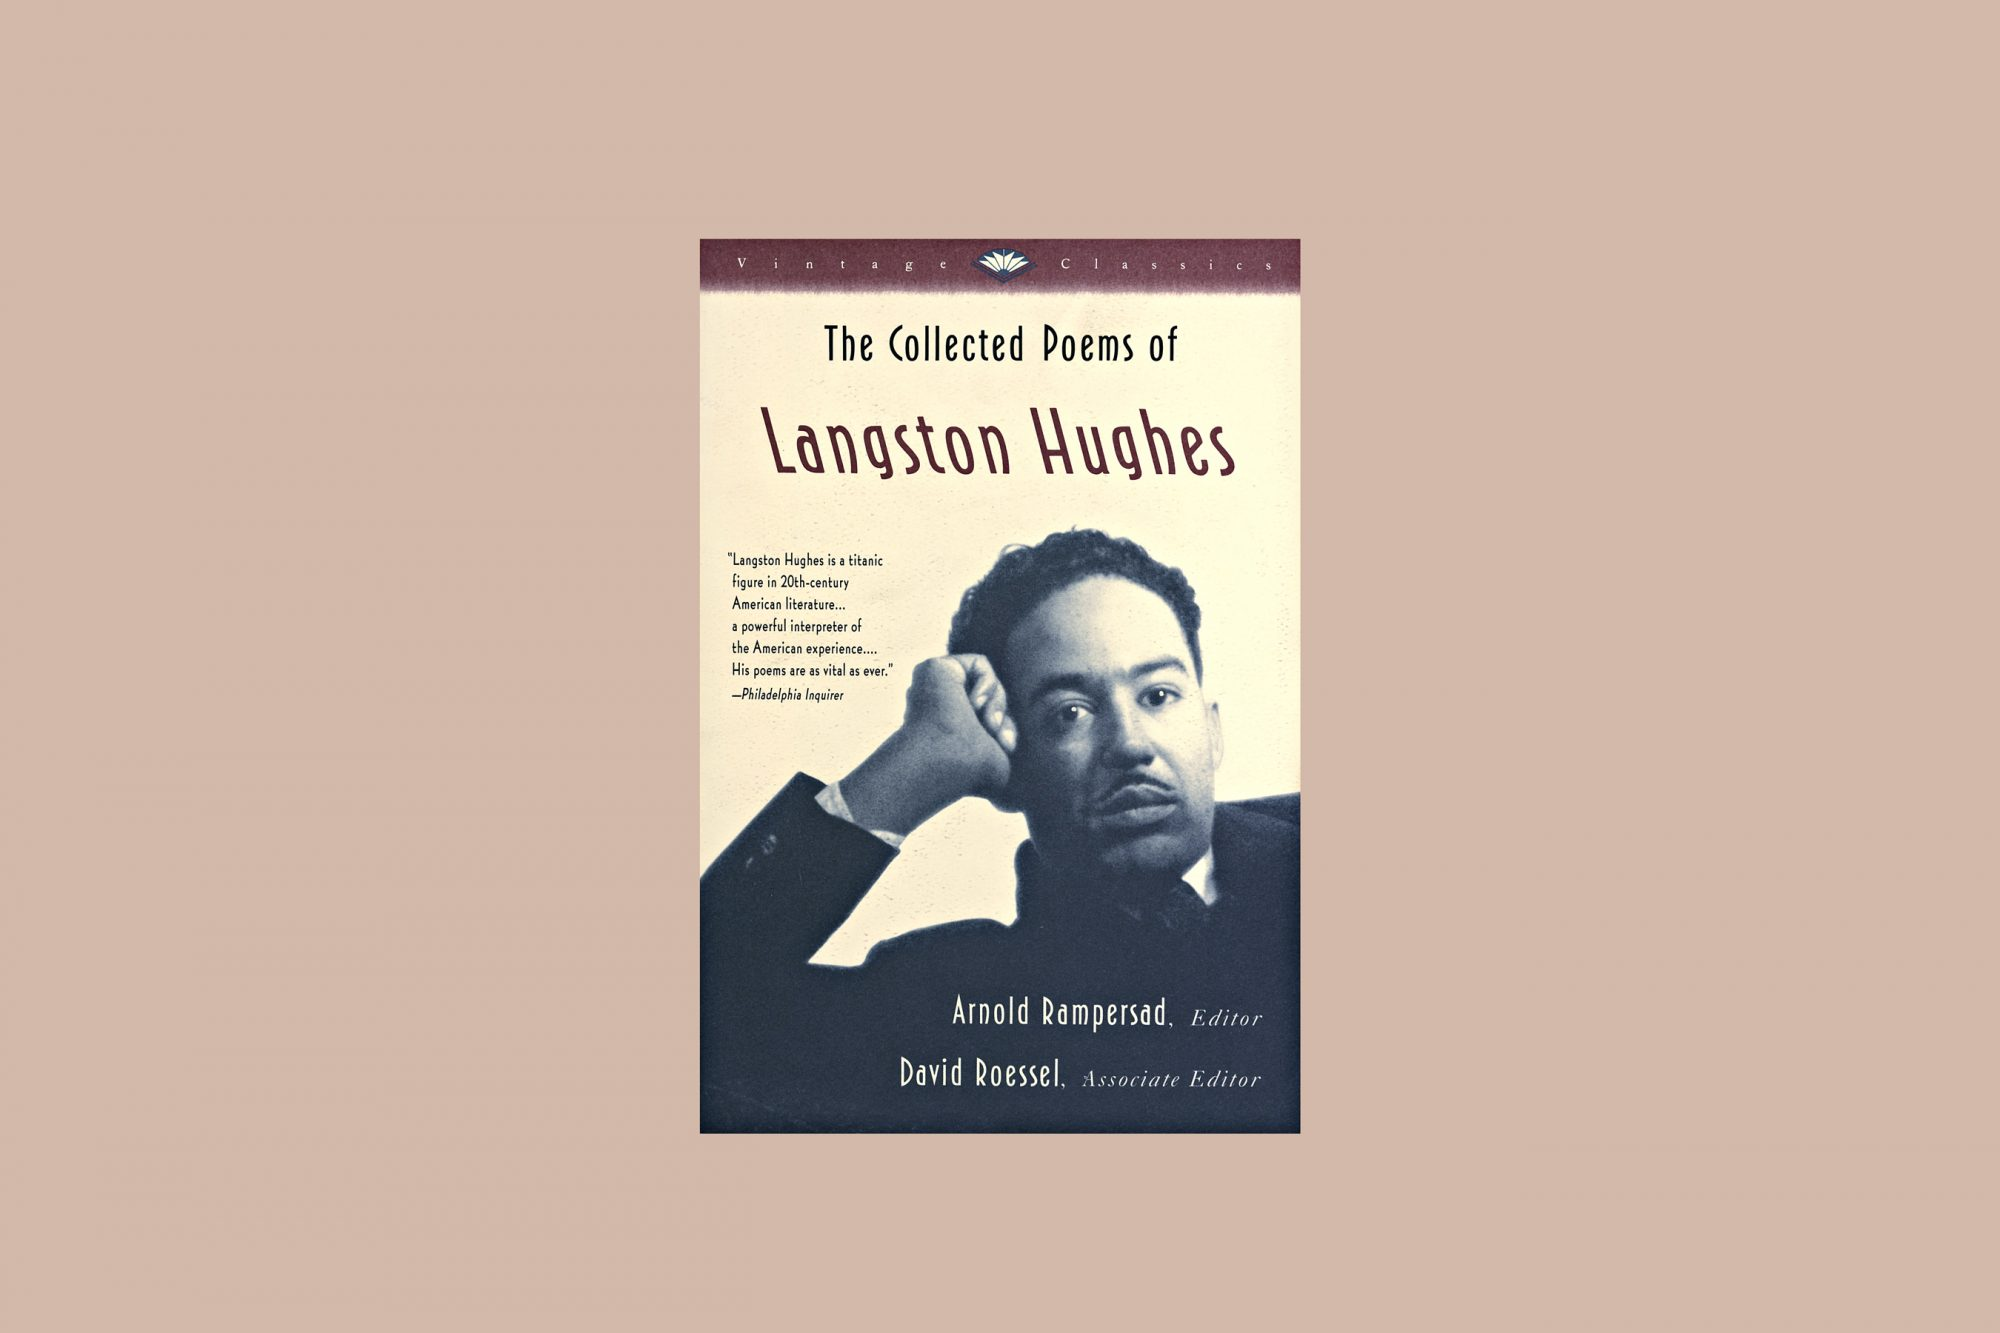 the collected poems of langston hughes vintage classics book cover